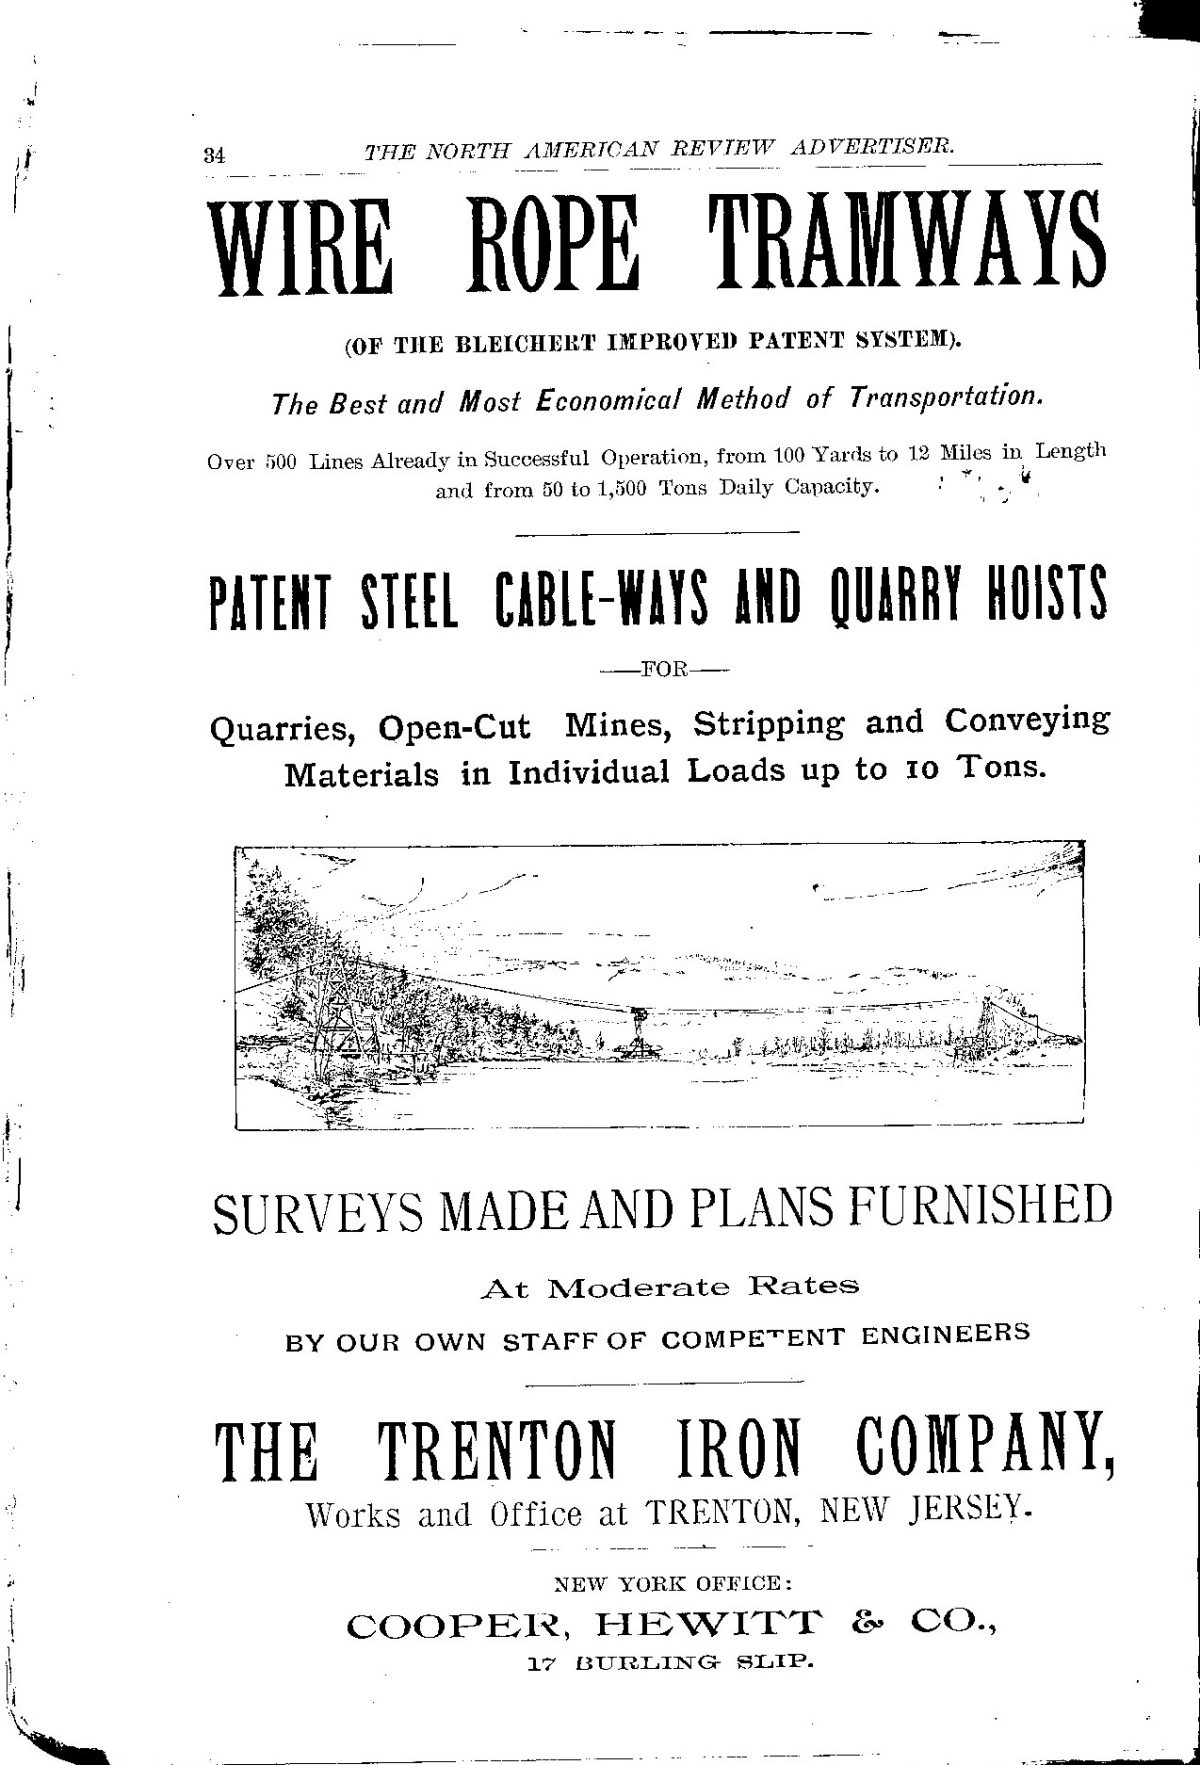 1893 Advertising in American National Review